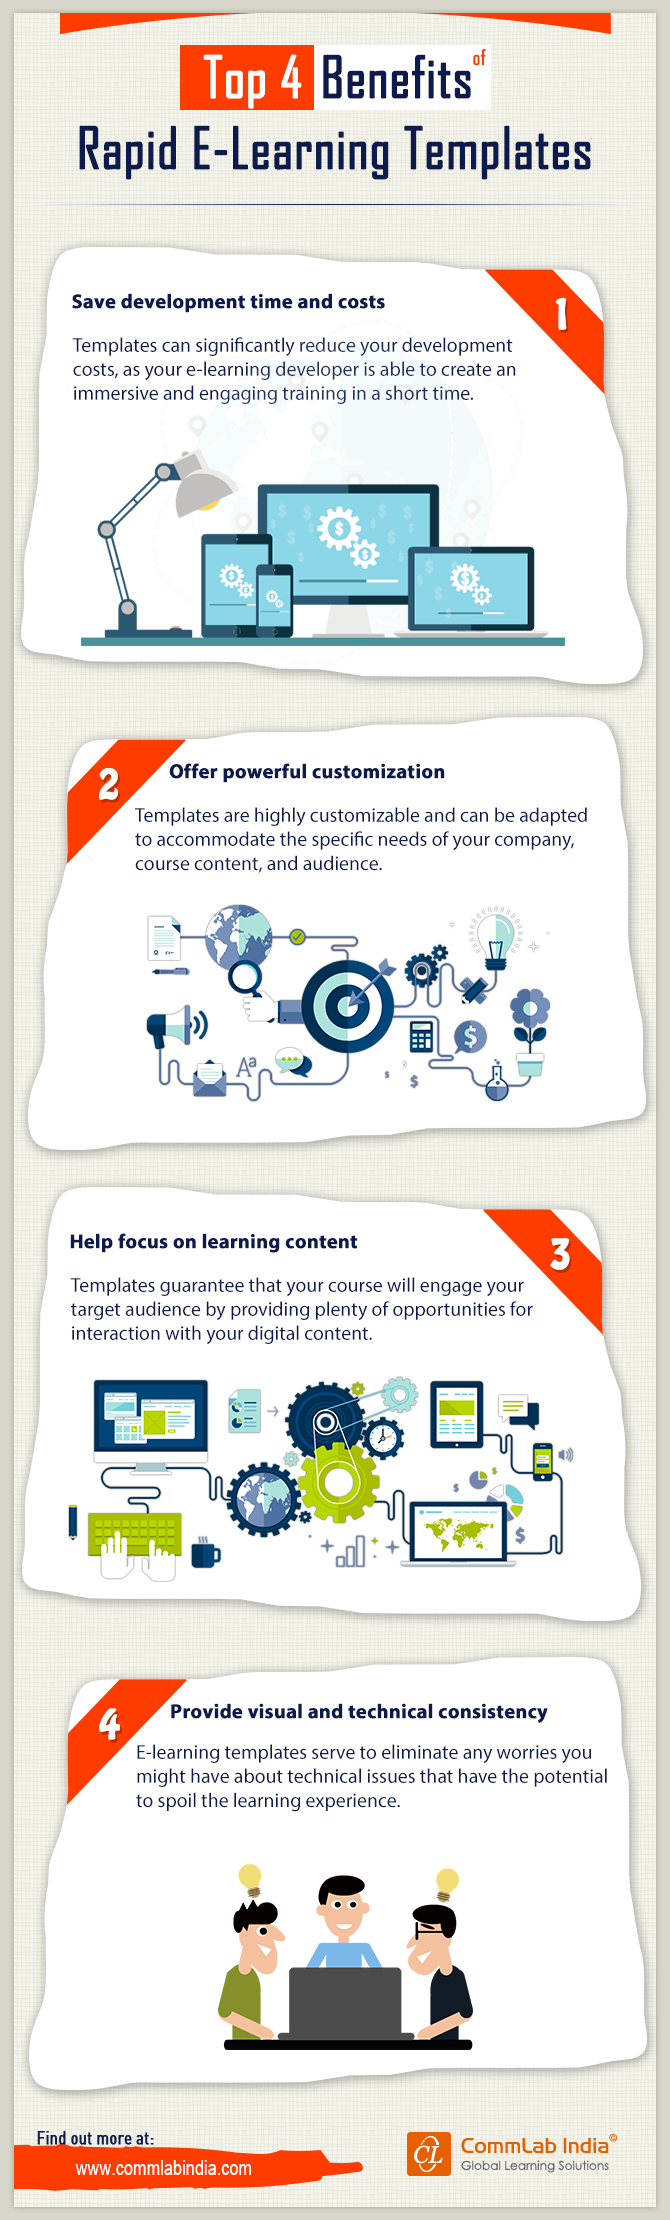 Top 4 Benefits of Rapid E-Learning Templates [Infographic]